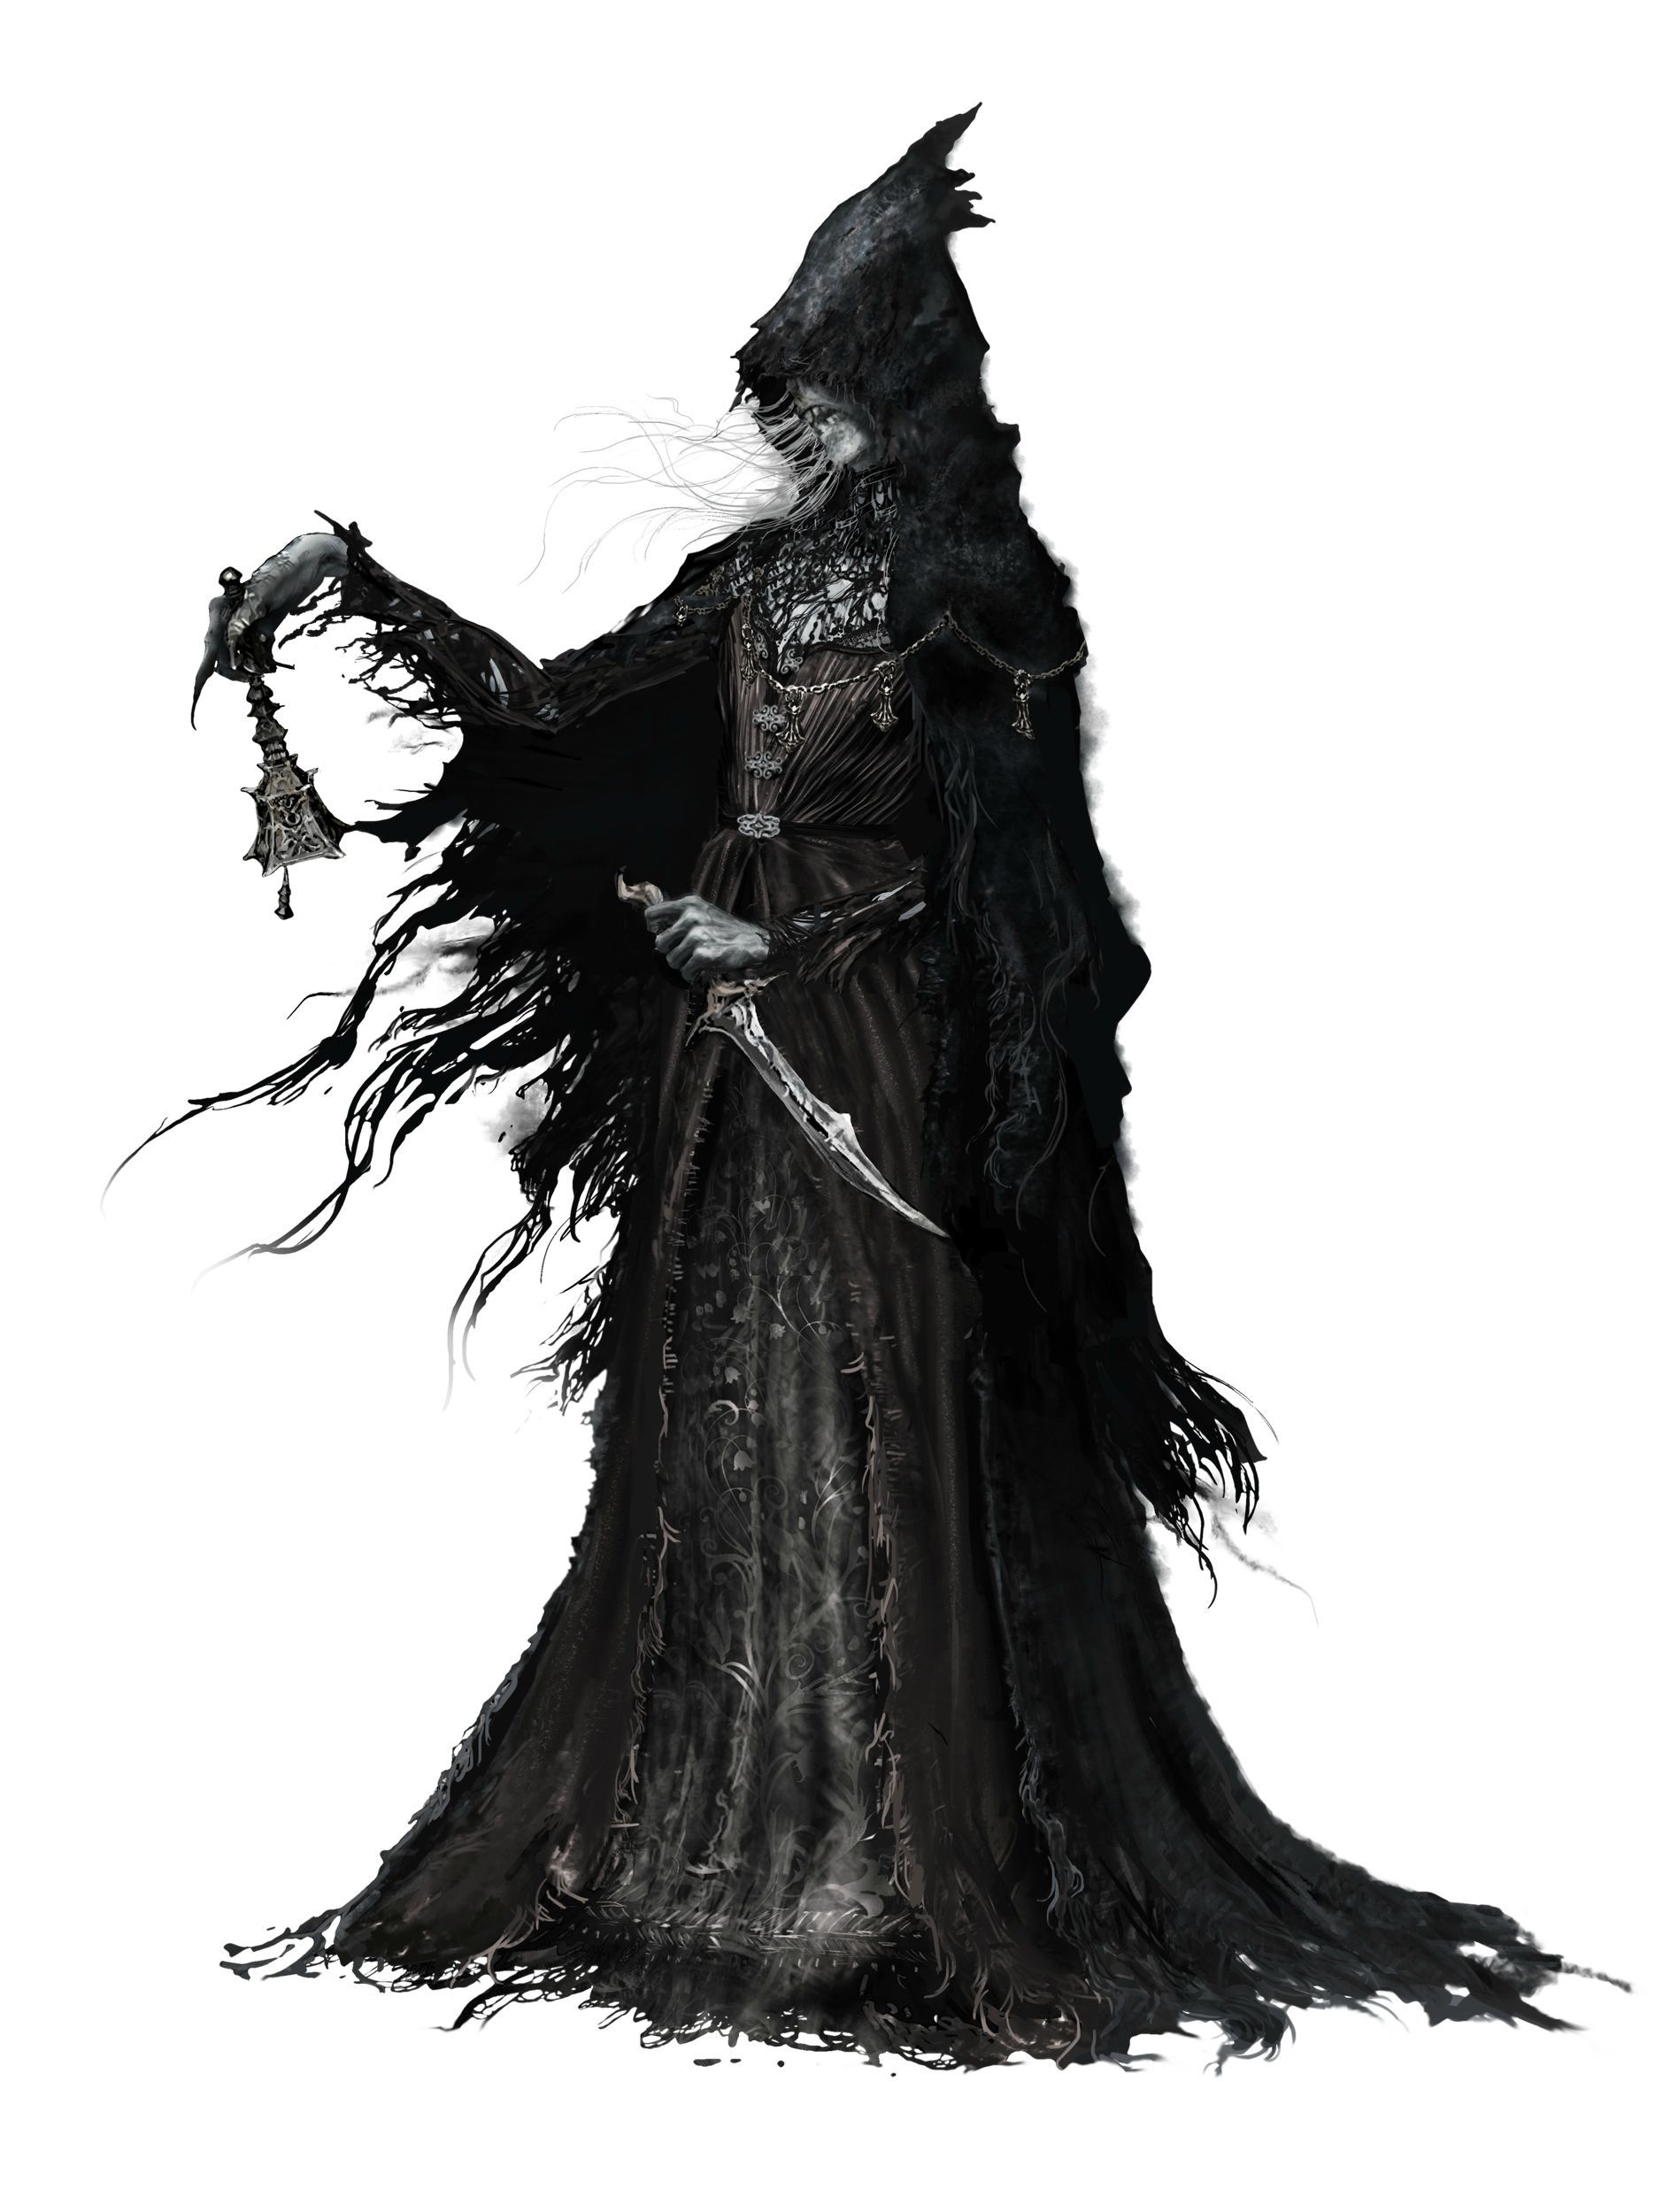 Curse breakers halloween horror mansion walkthrough solution - Bloodborne Concept Art Chime Maiden